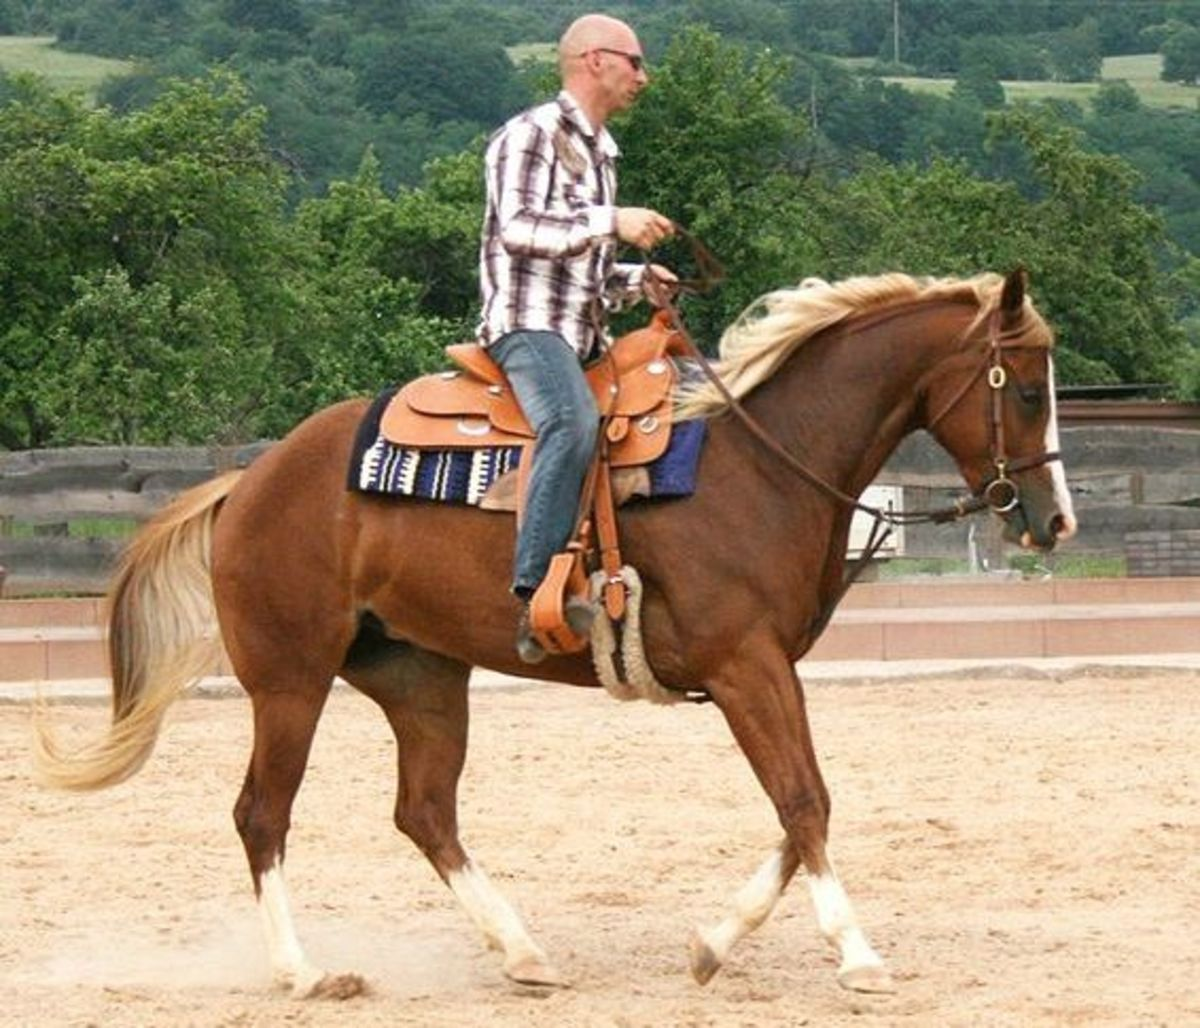 Western Saddles: How to Ensure a Good Fit for Your Horse